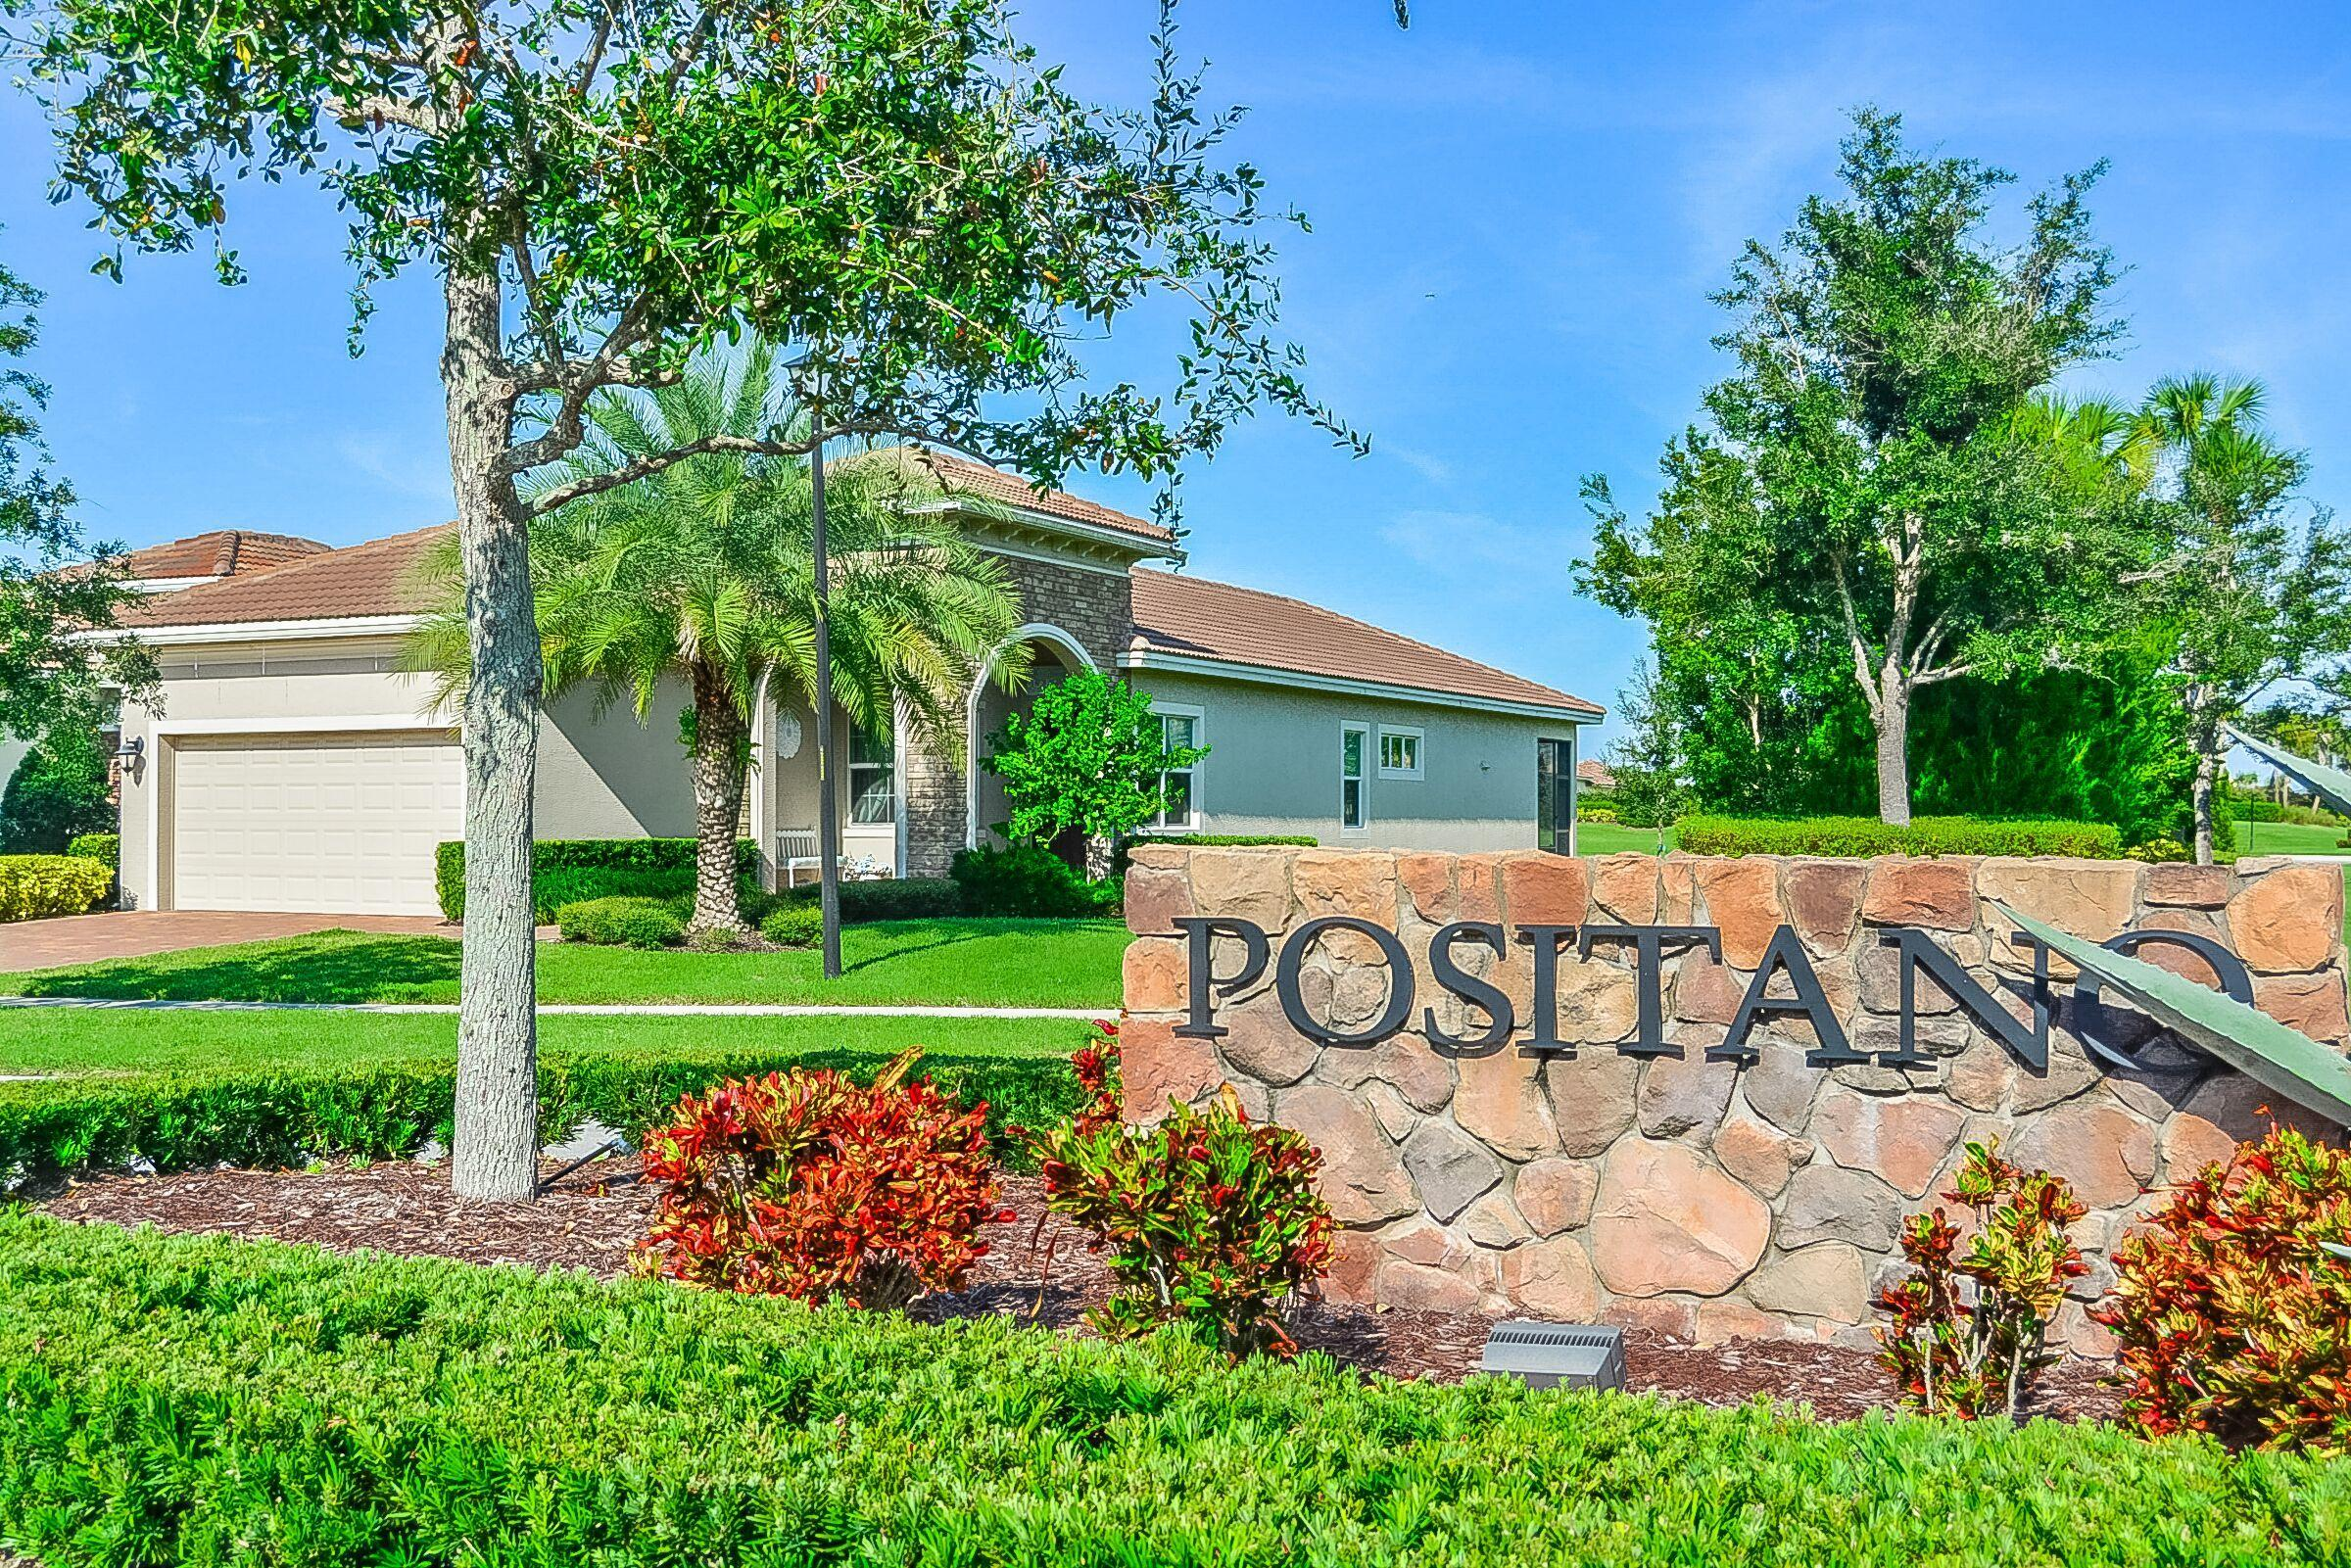 19041 SW Positano Way, Port Saint Lucie, FL 34986